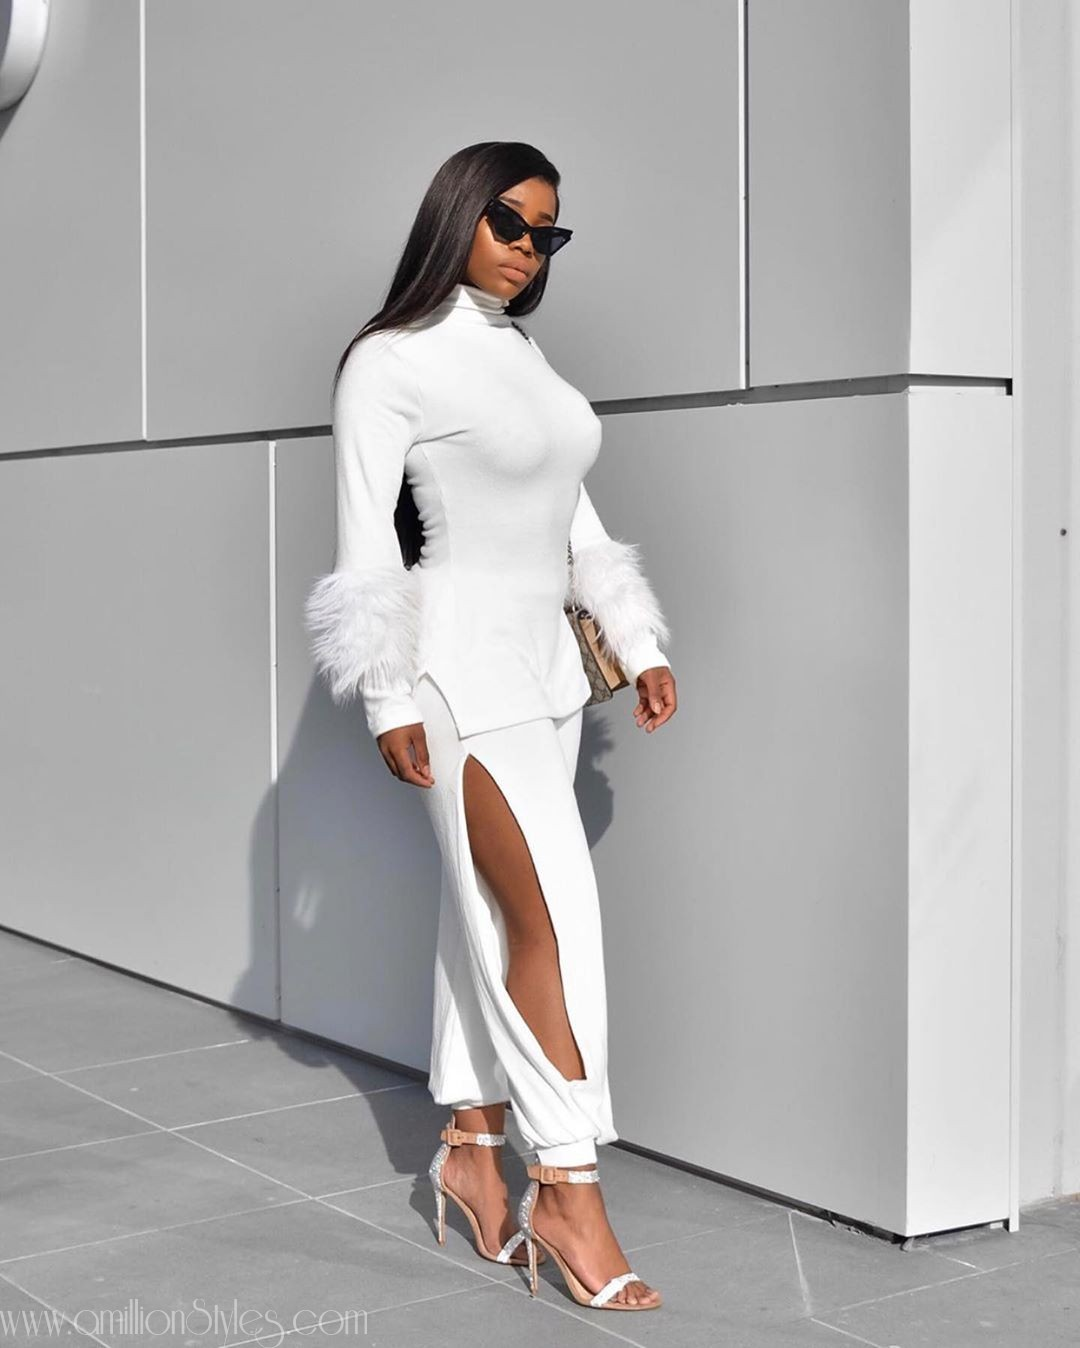 These Beautiful Women Will Make You Fall In Love With White Dresses